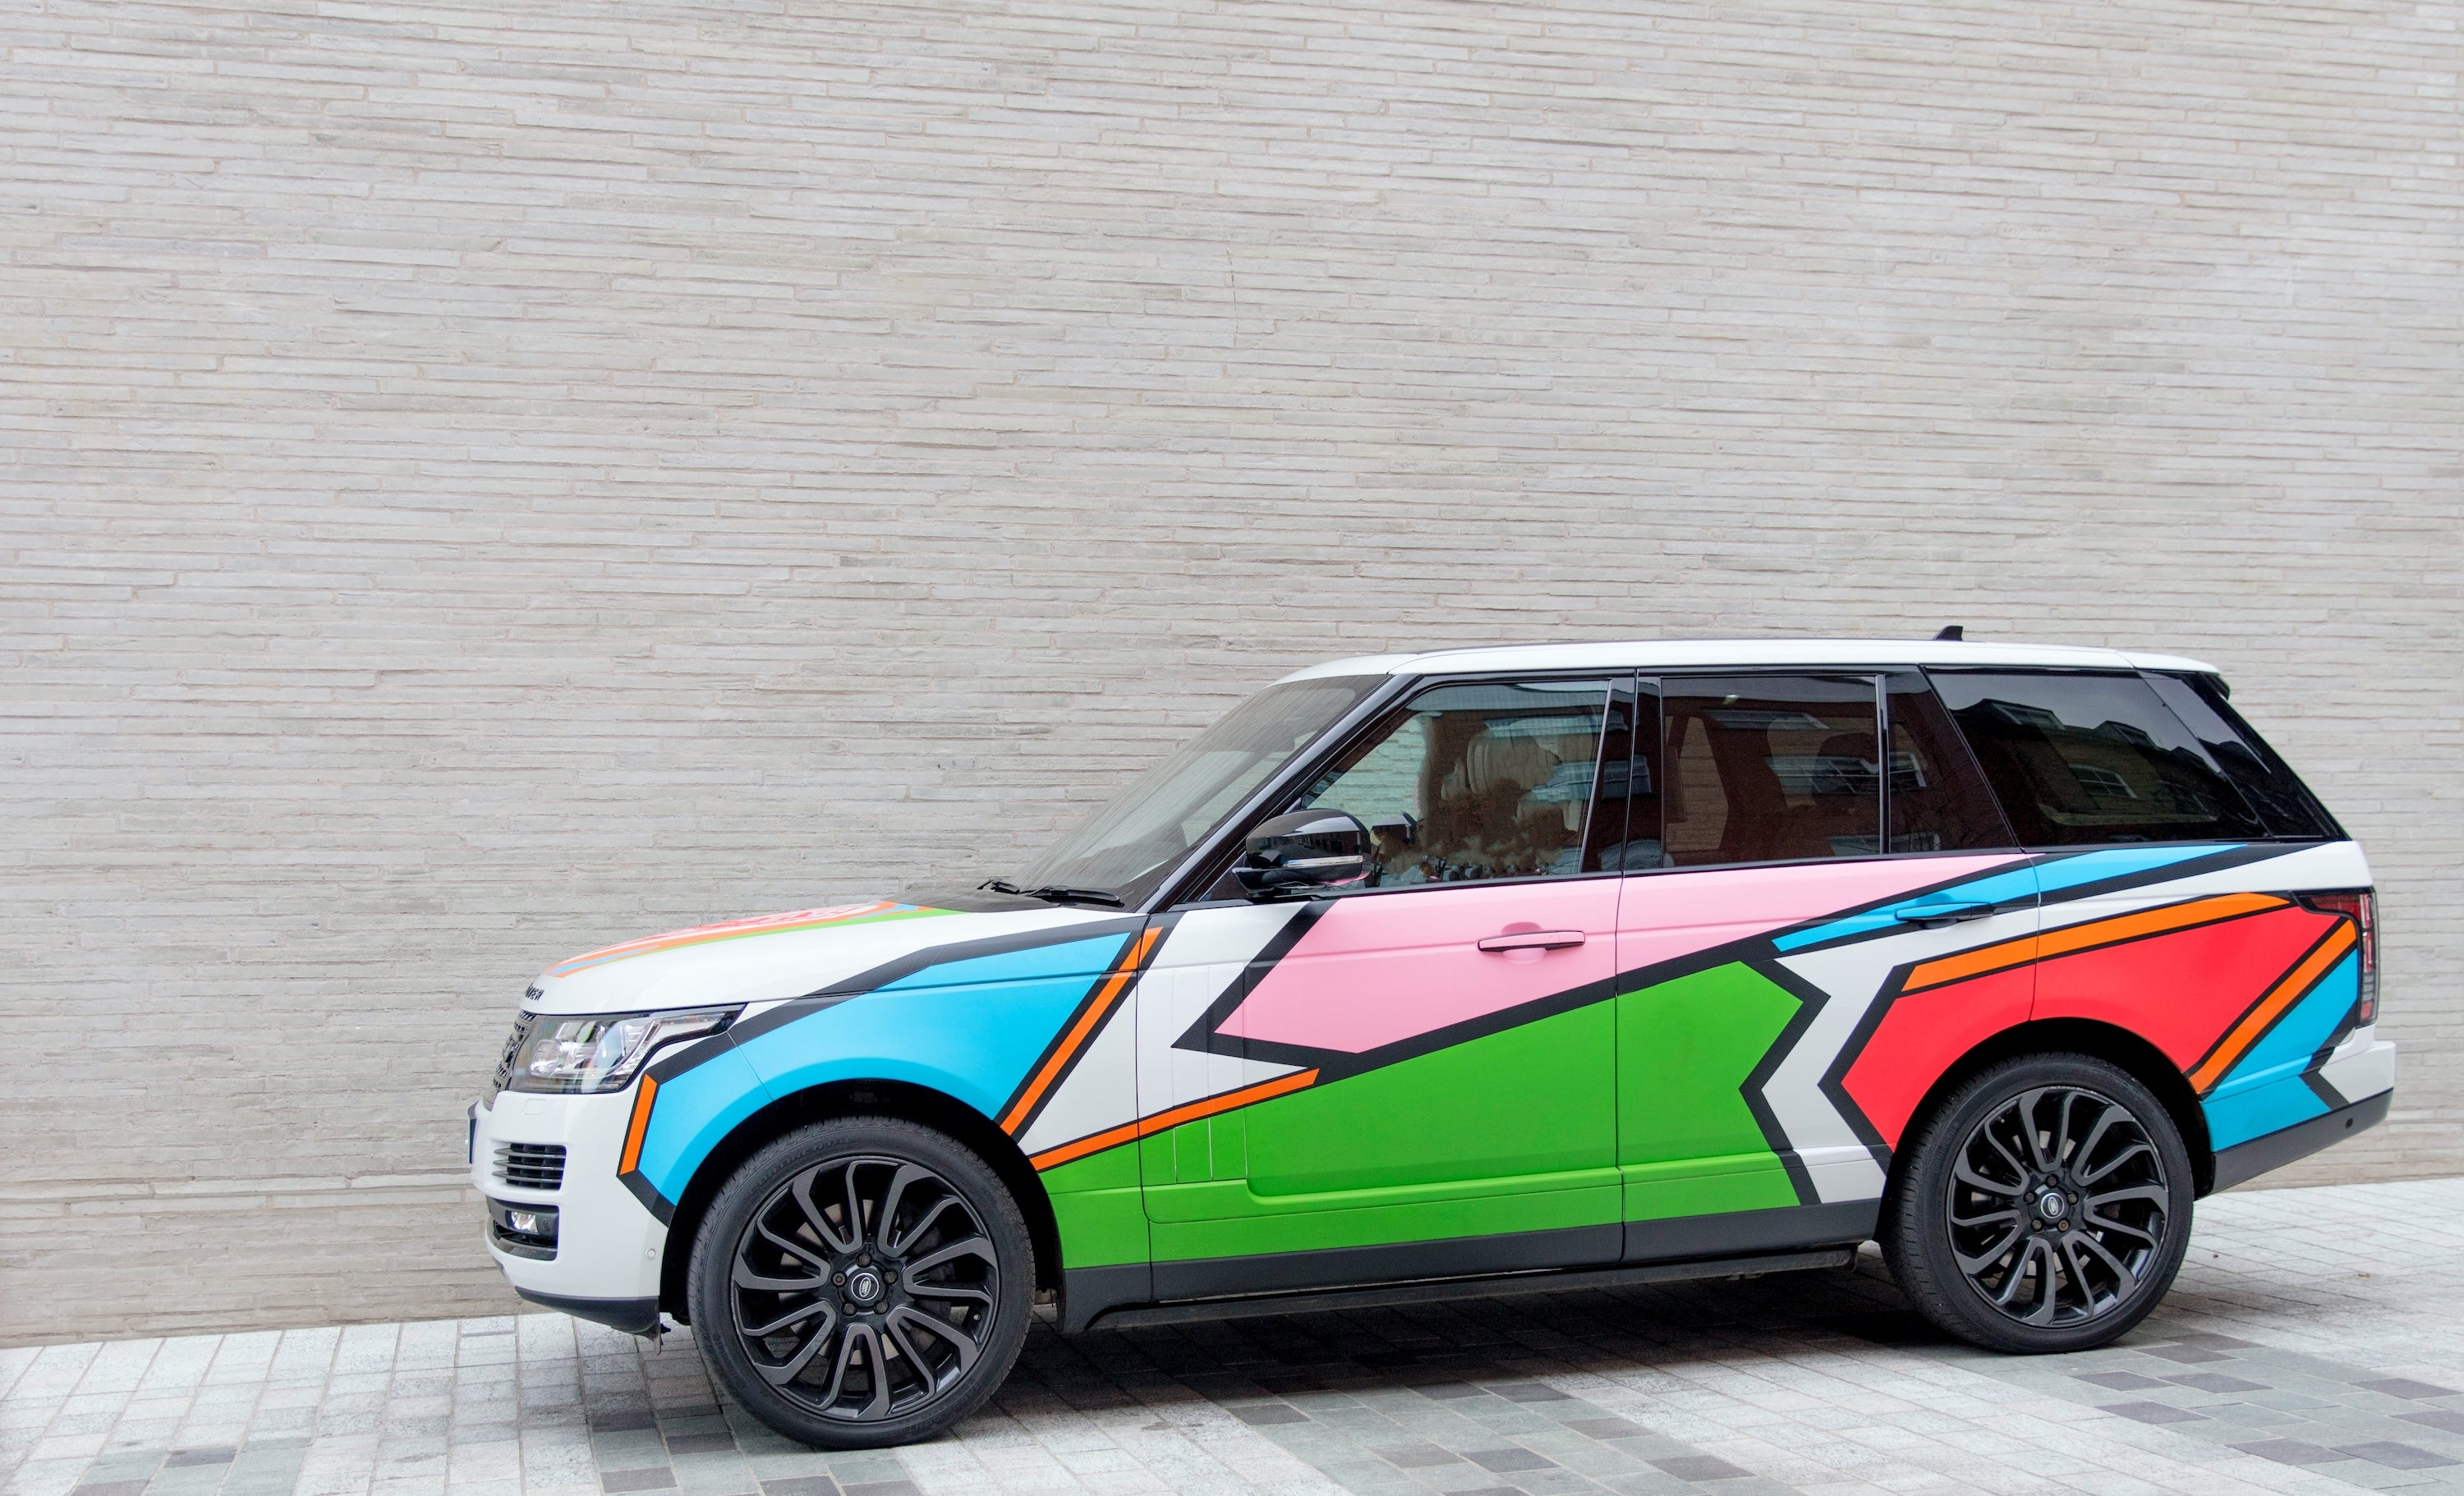 Teddy McDonald Range Rover Autobiography Art Car